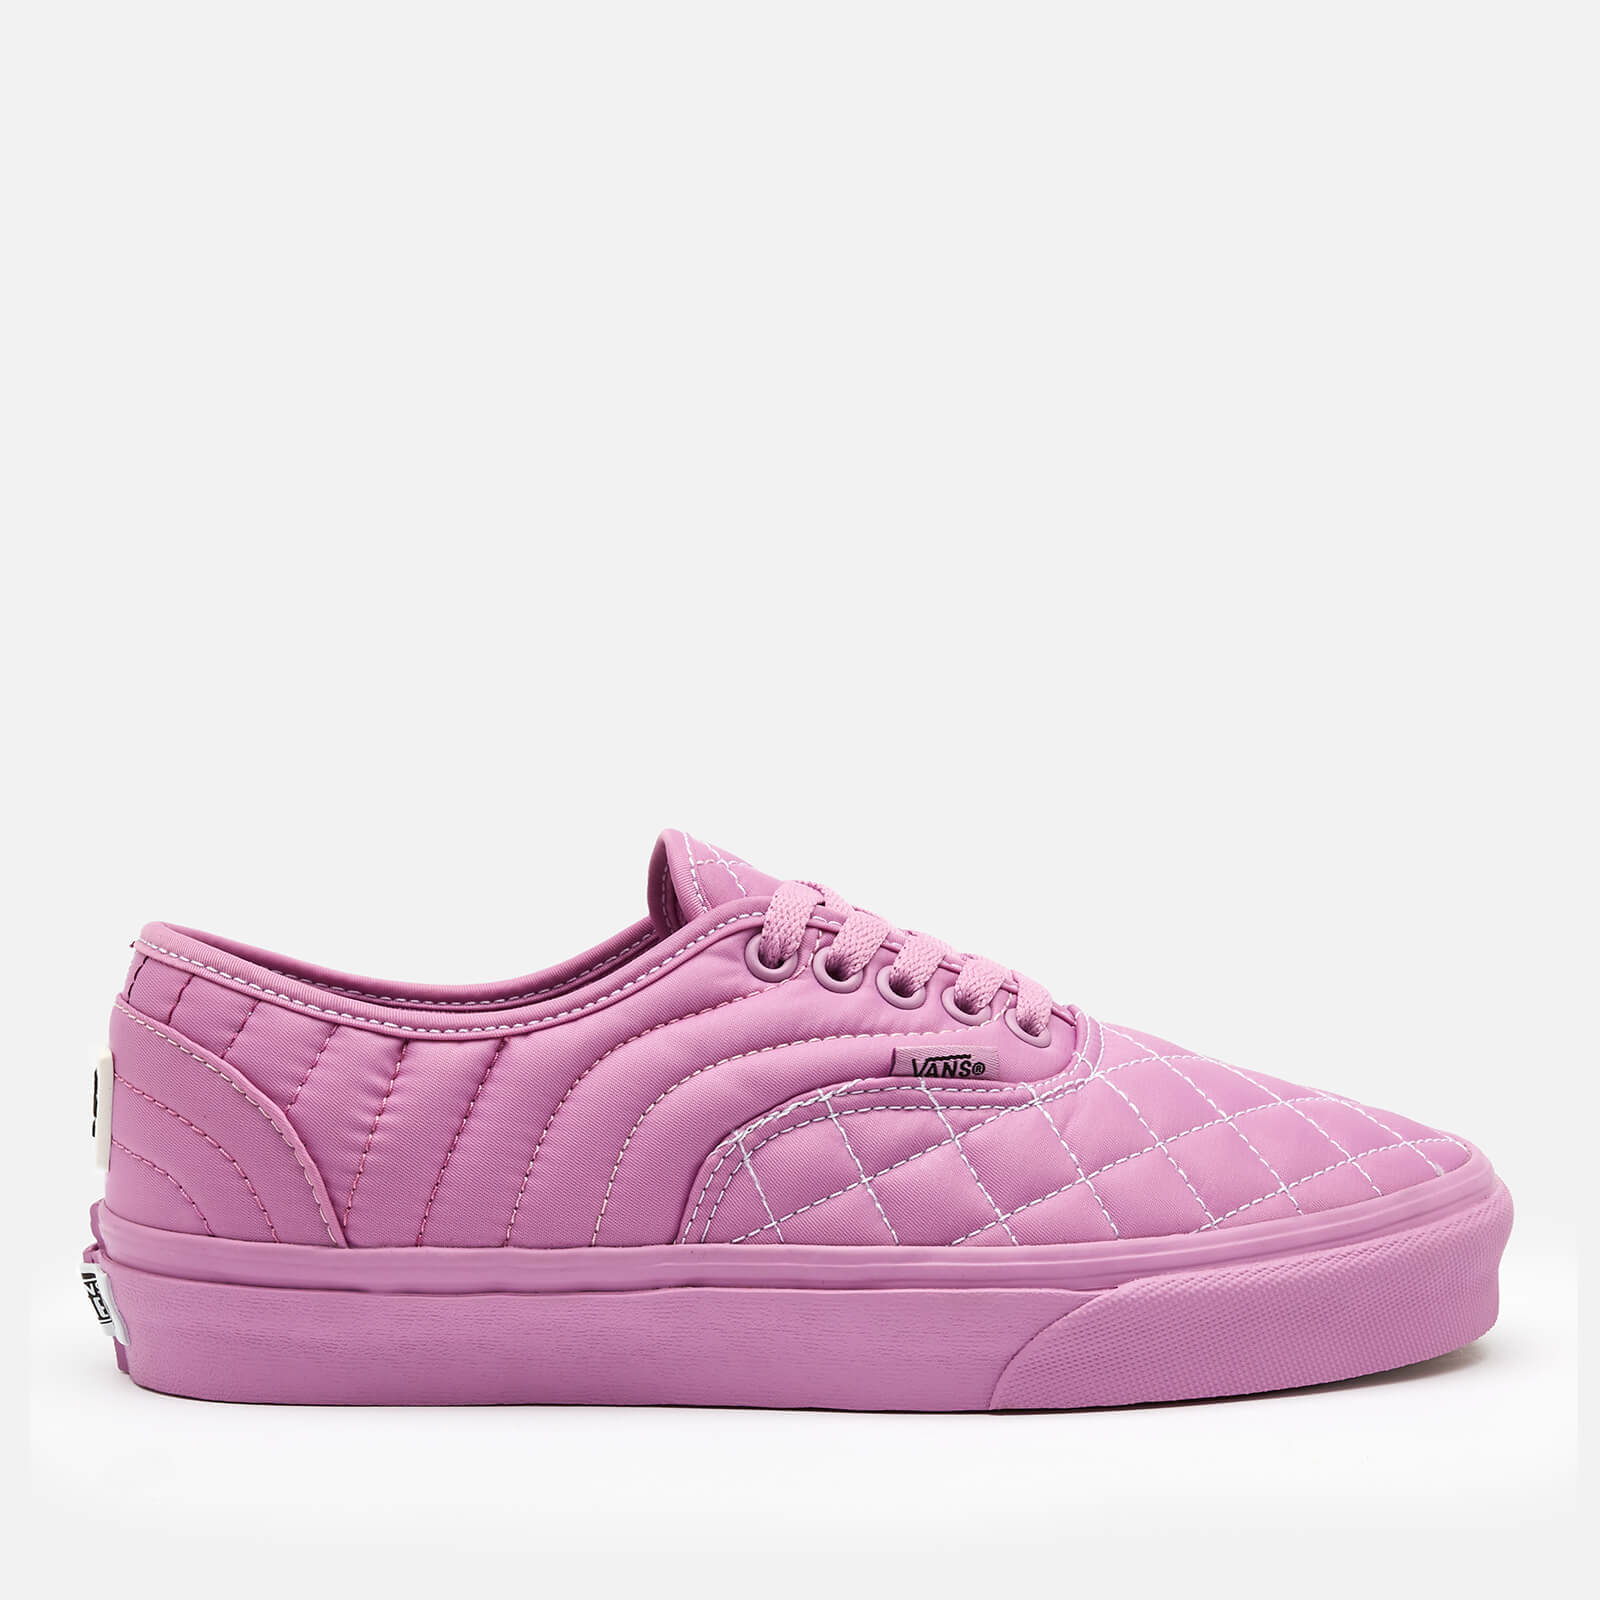 Vans X Opening Ceremony Authentic Quilted Trainers - Orchid - UK 4